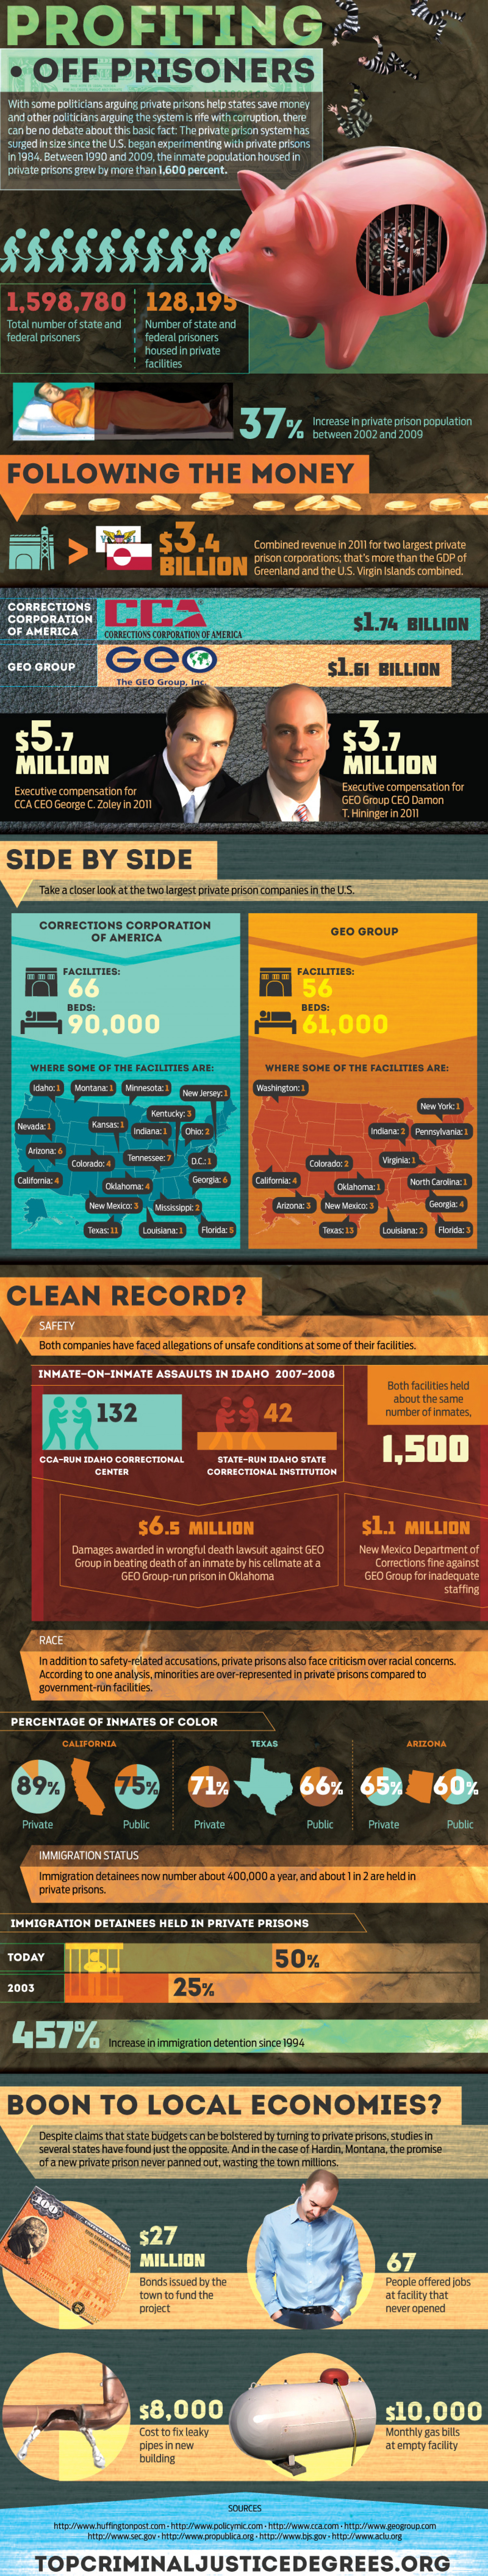 Profiting Off Prisoners Infographic